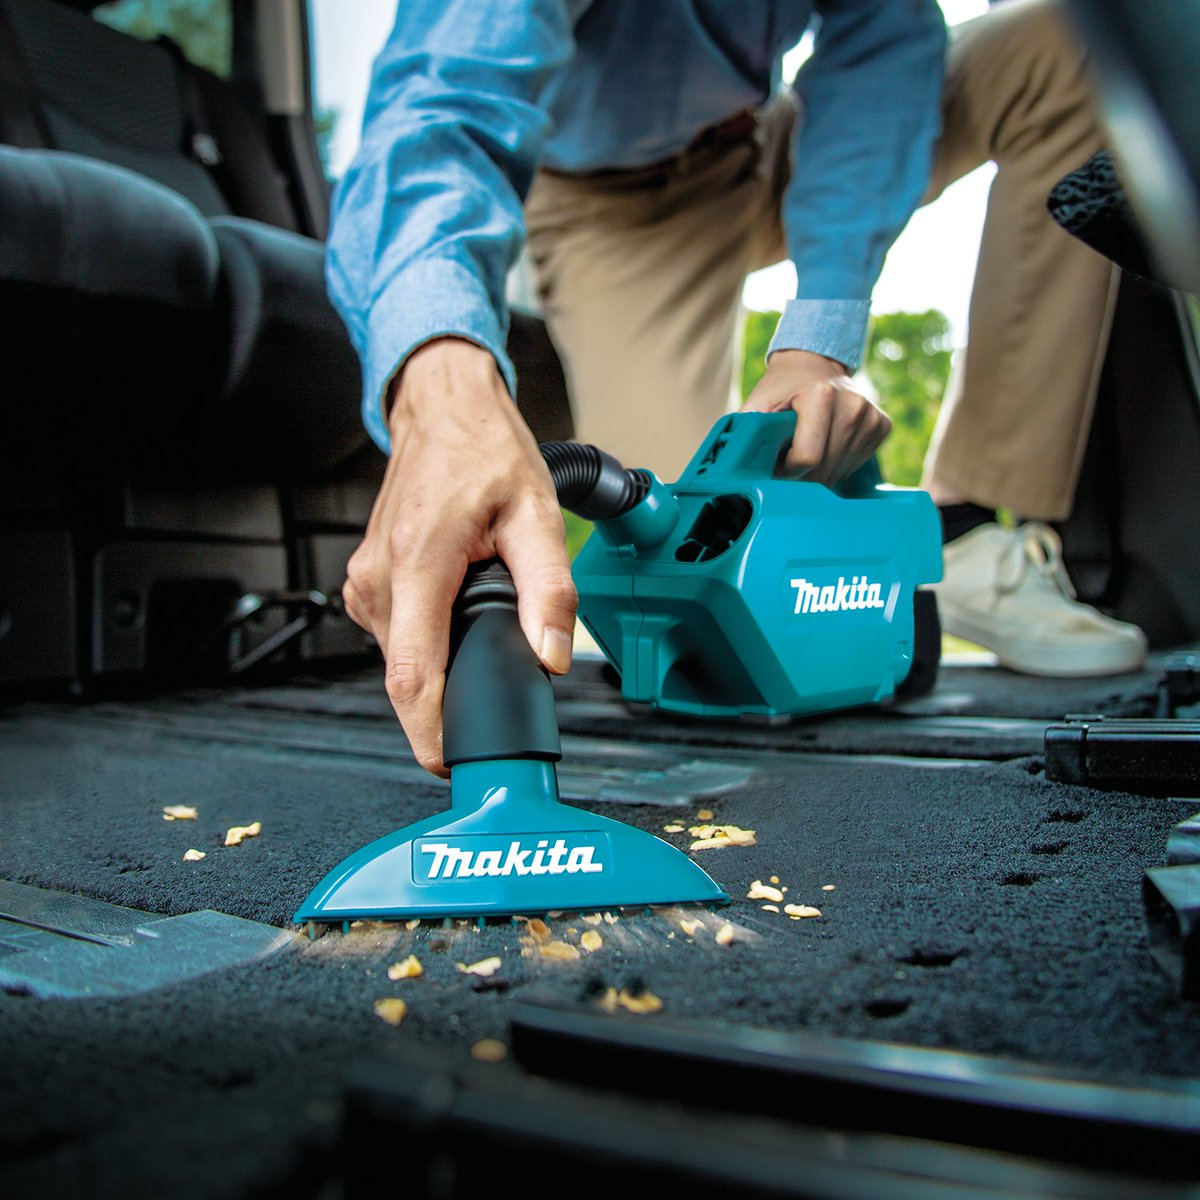 """The 18V LXT Compact Handheld Canister Vacuum is versatile and portable to handle quick clean-ups and car interior cleaning. It delivers 49 CFM and up to 40 minutes of continuous run time with a fully charged 1.5Ah Battery (BL1815). Hose extends to 40-1/2""""."""